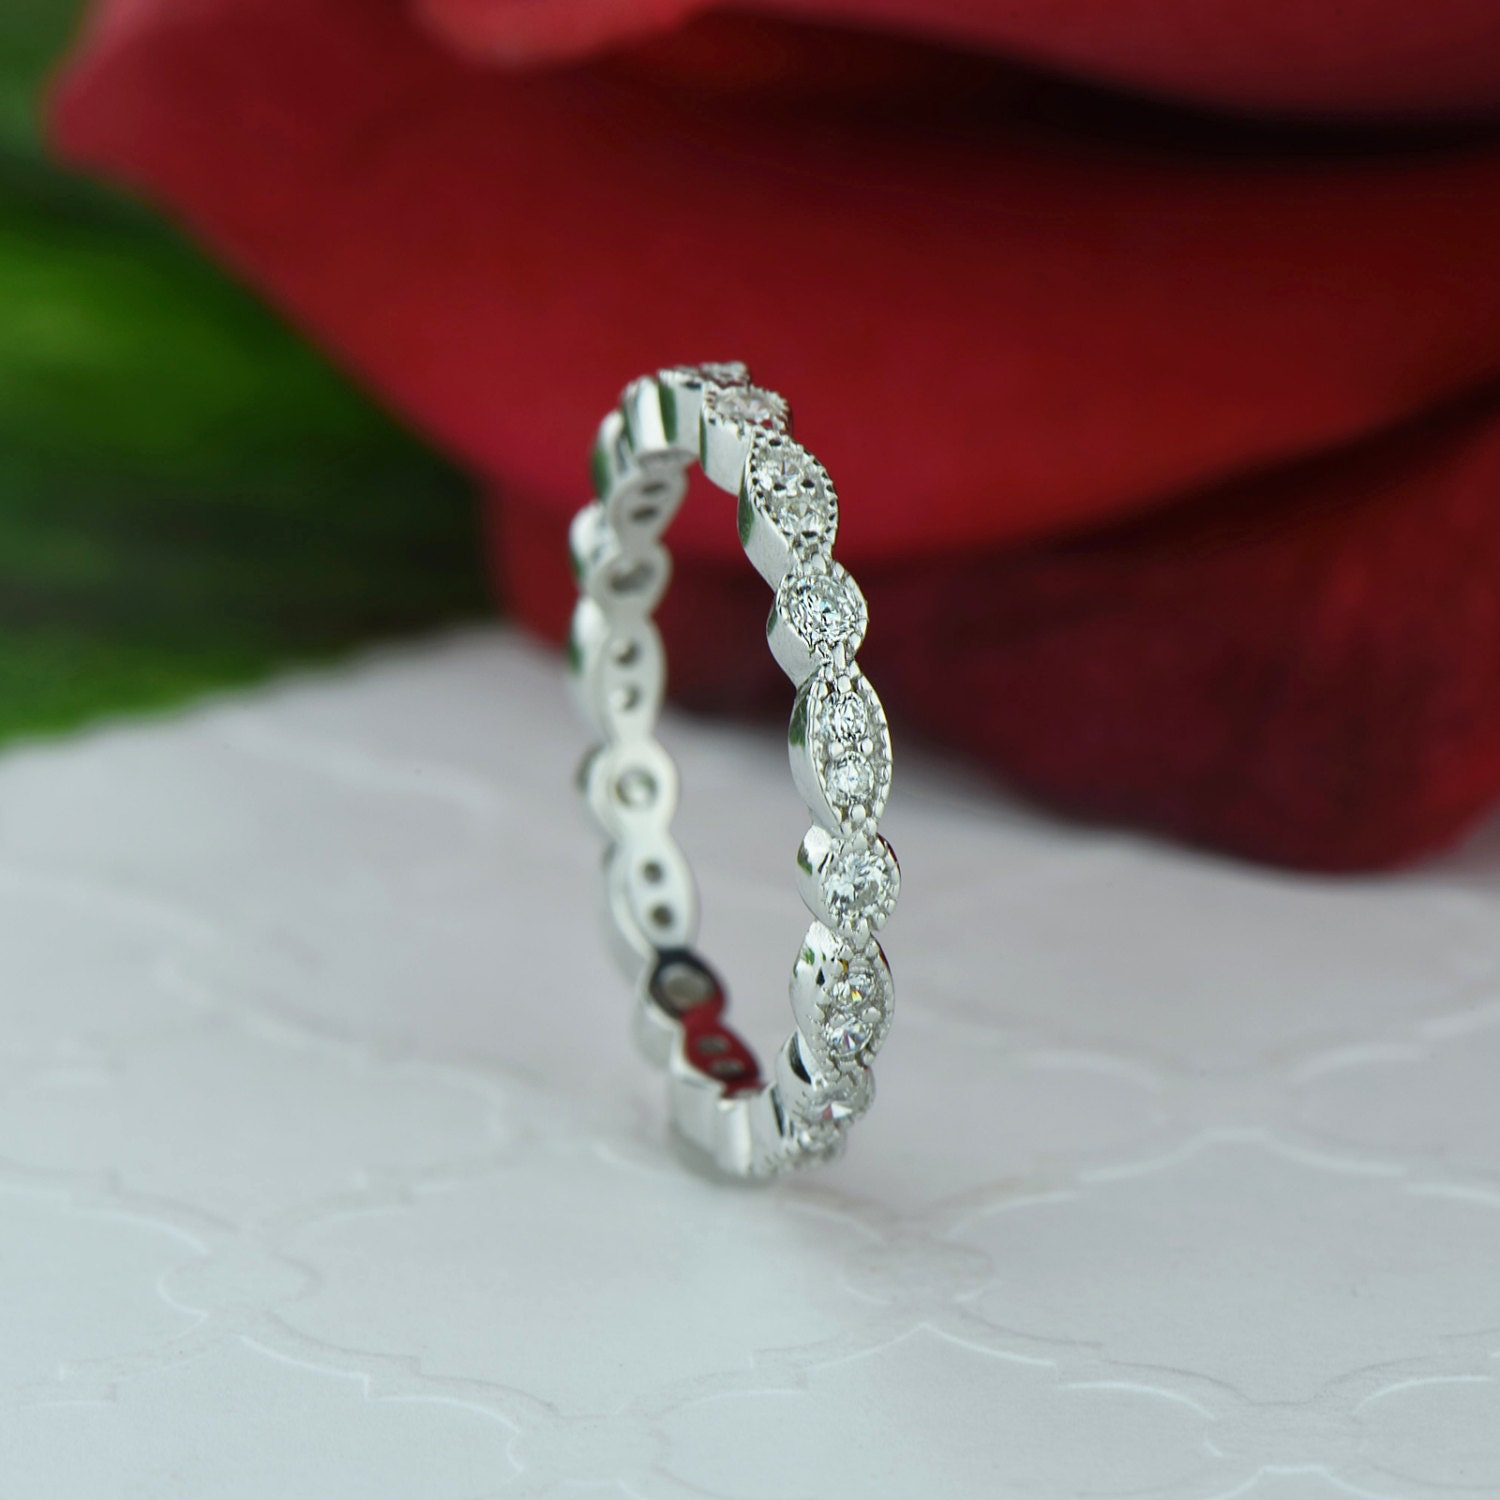 Small Full Eternity Ring Marquise Art Deco Round Wedding. Peoples Diamond. Purple Diamond Rings. Music Diamond. Pretty Bracelet. Gem Stud Earrings. Boys Bracelet. Alluvial Diamond. Junior Rings